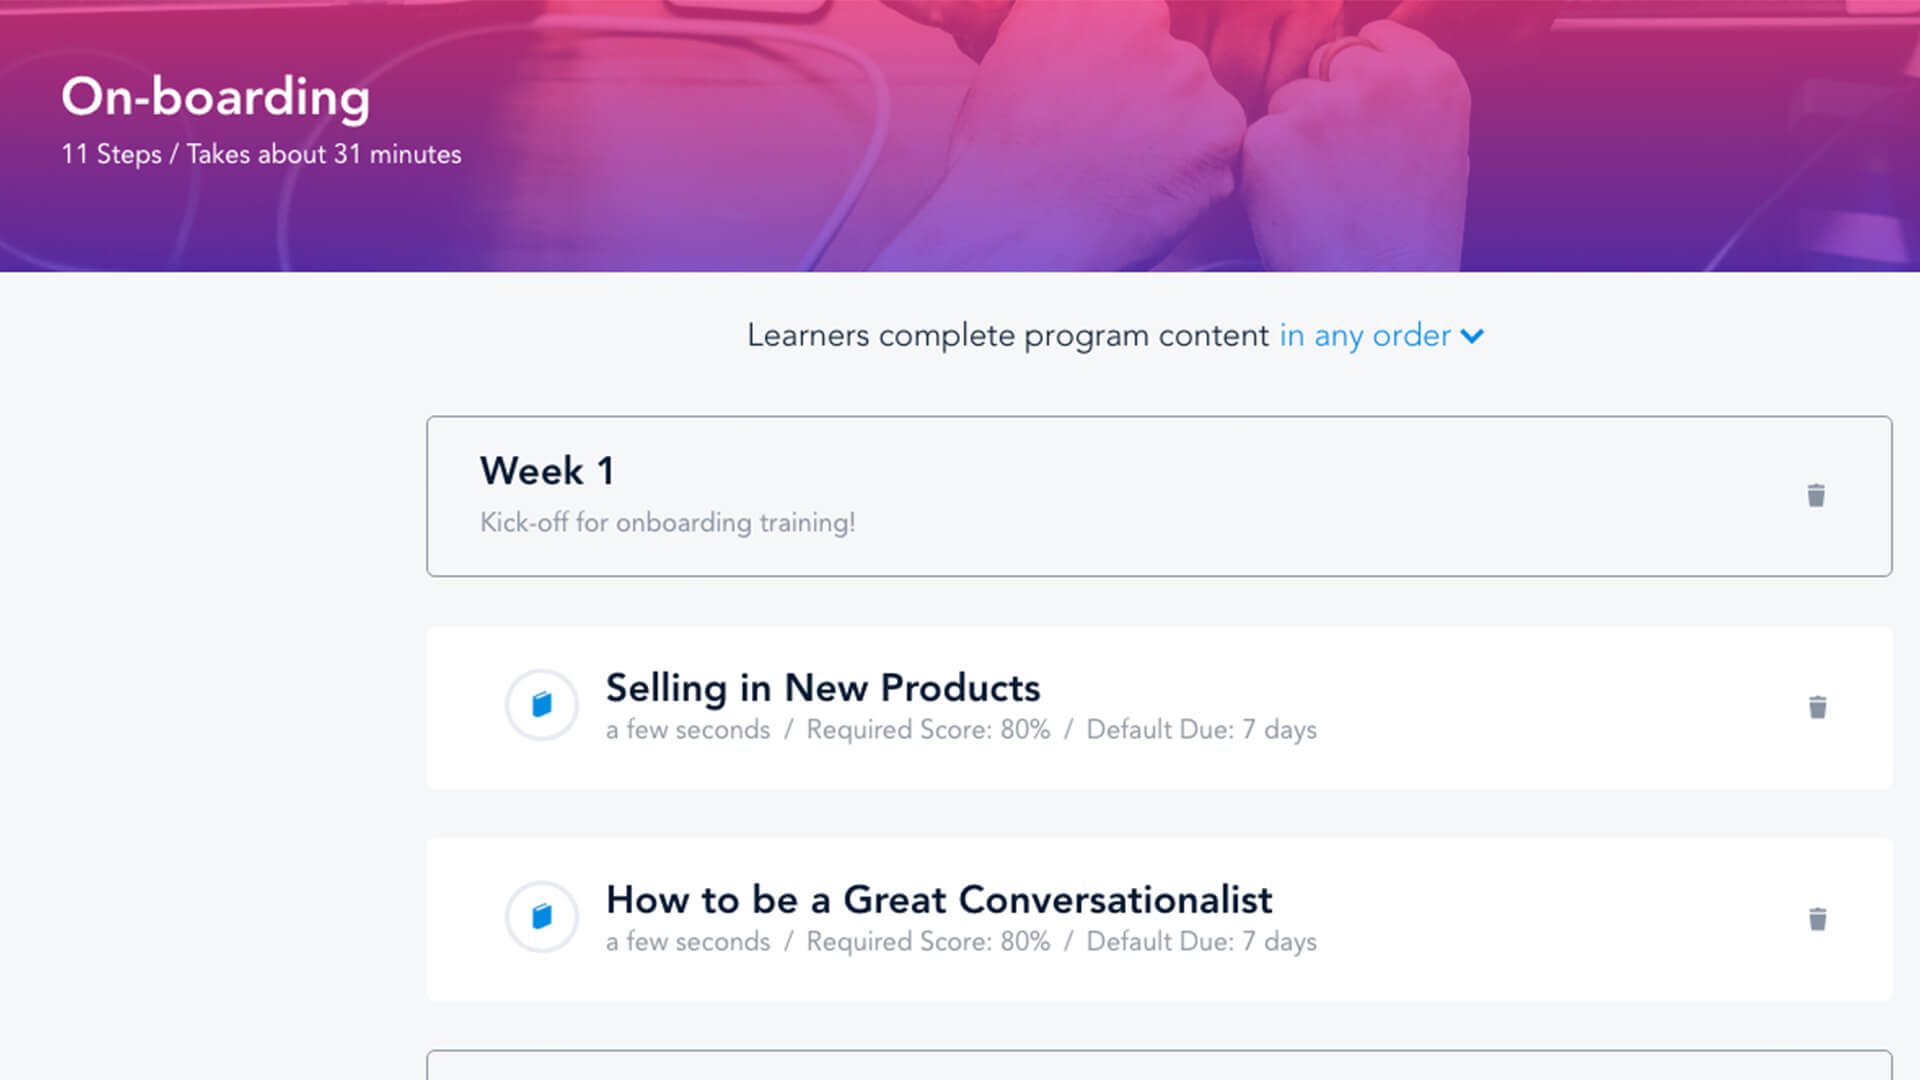 BRIDGE screenshot: ON-BOARDING: Your first encounter with a new employee sets the tone for the rest of their experience with your company. Bridge makes on-boarding & training new employees easy. From day 1, you can assign them courses, assessments & quizzes.